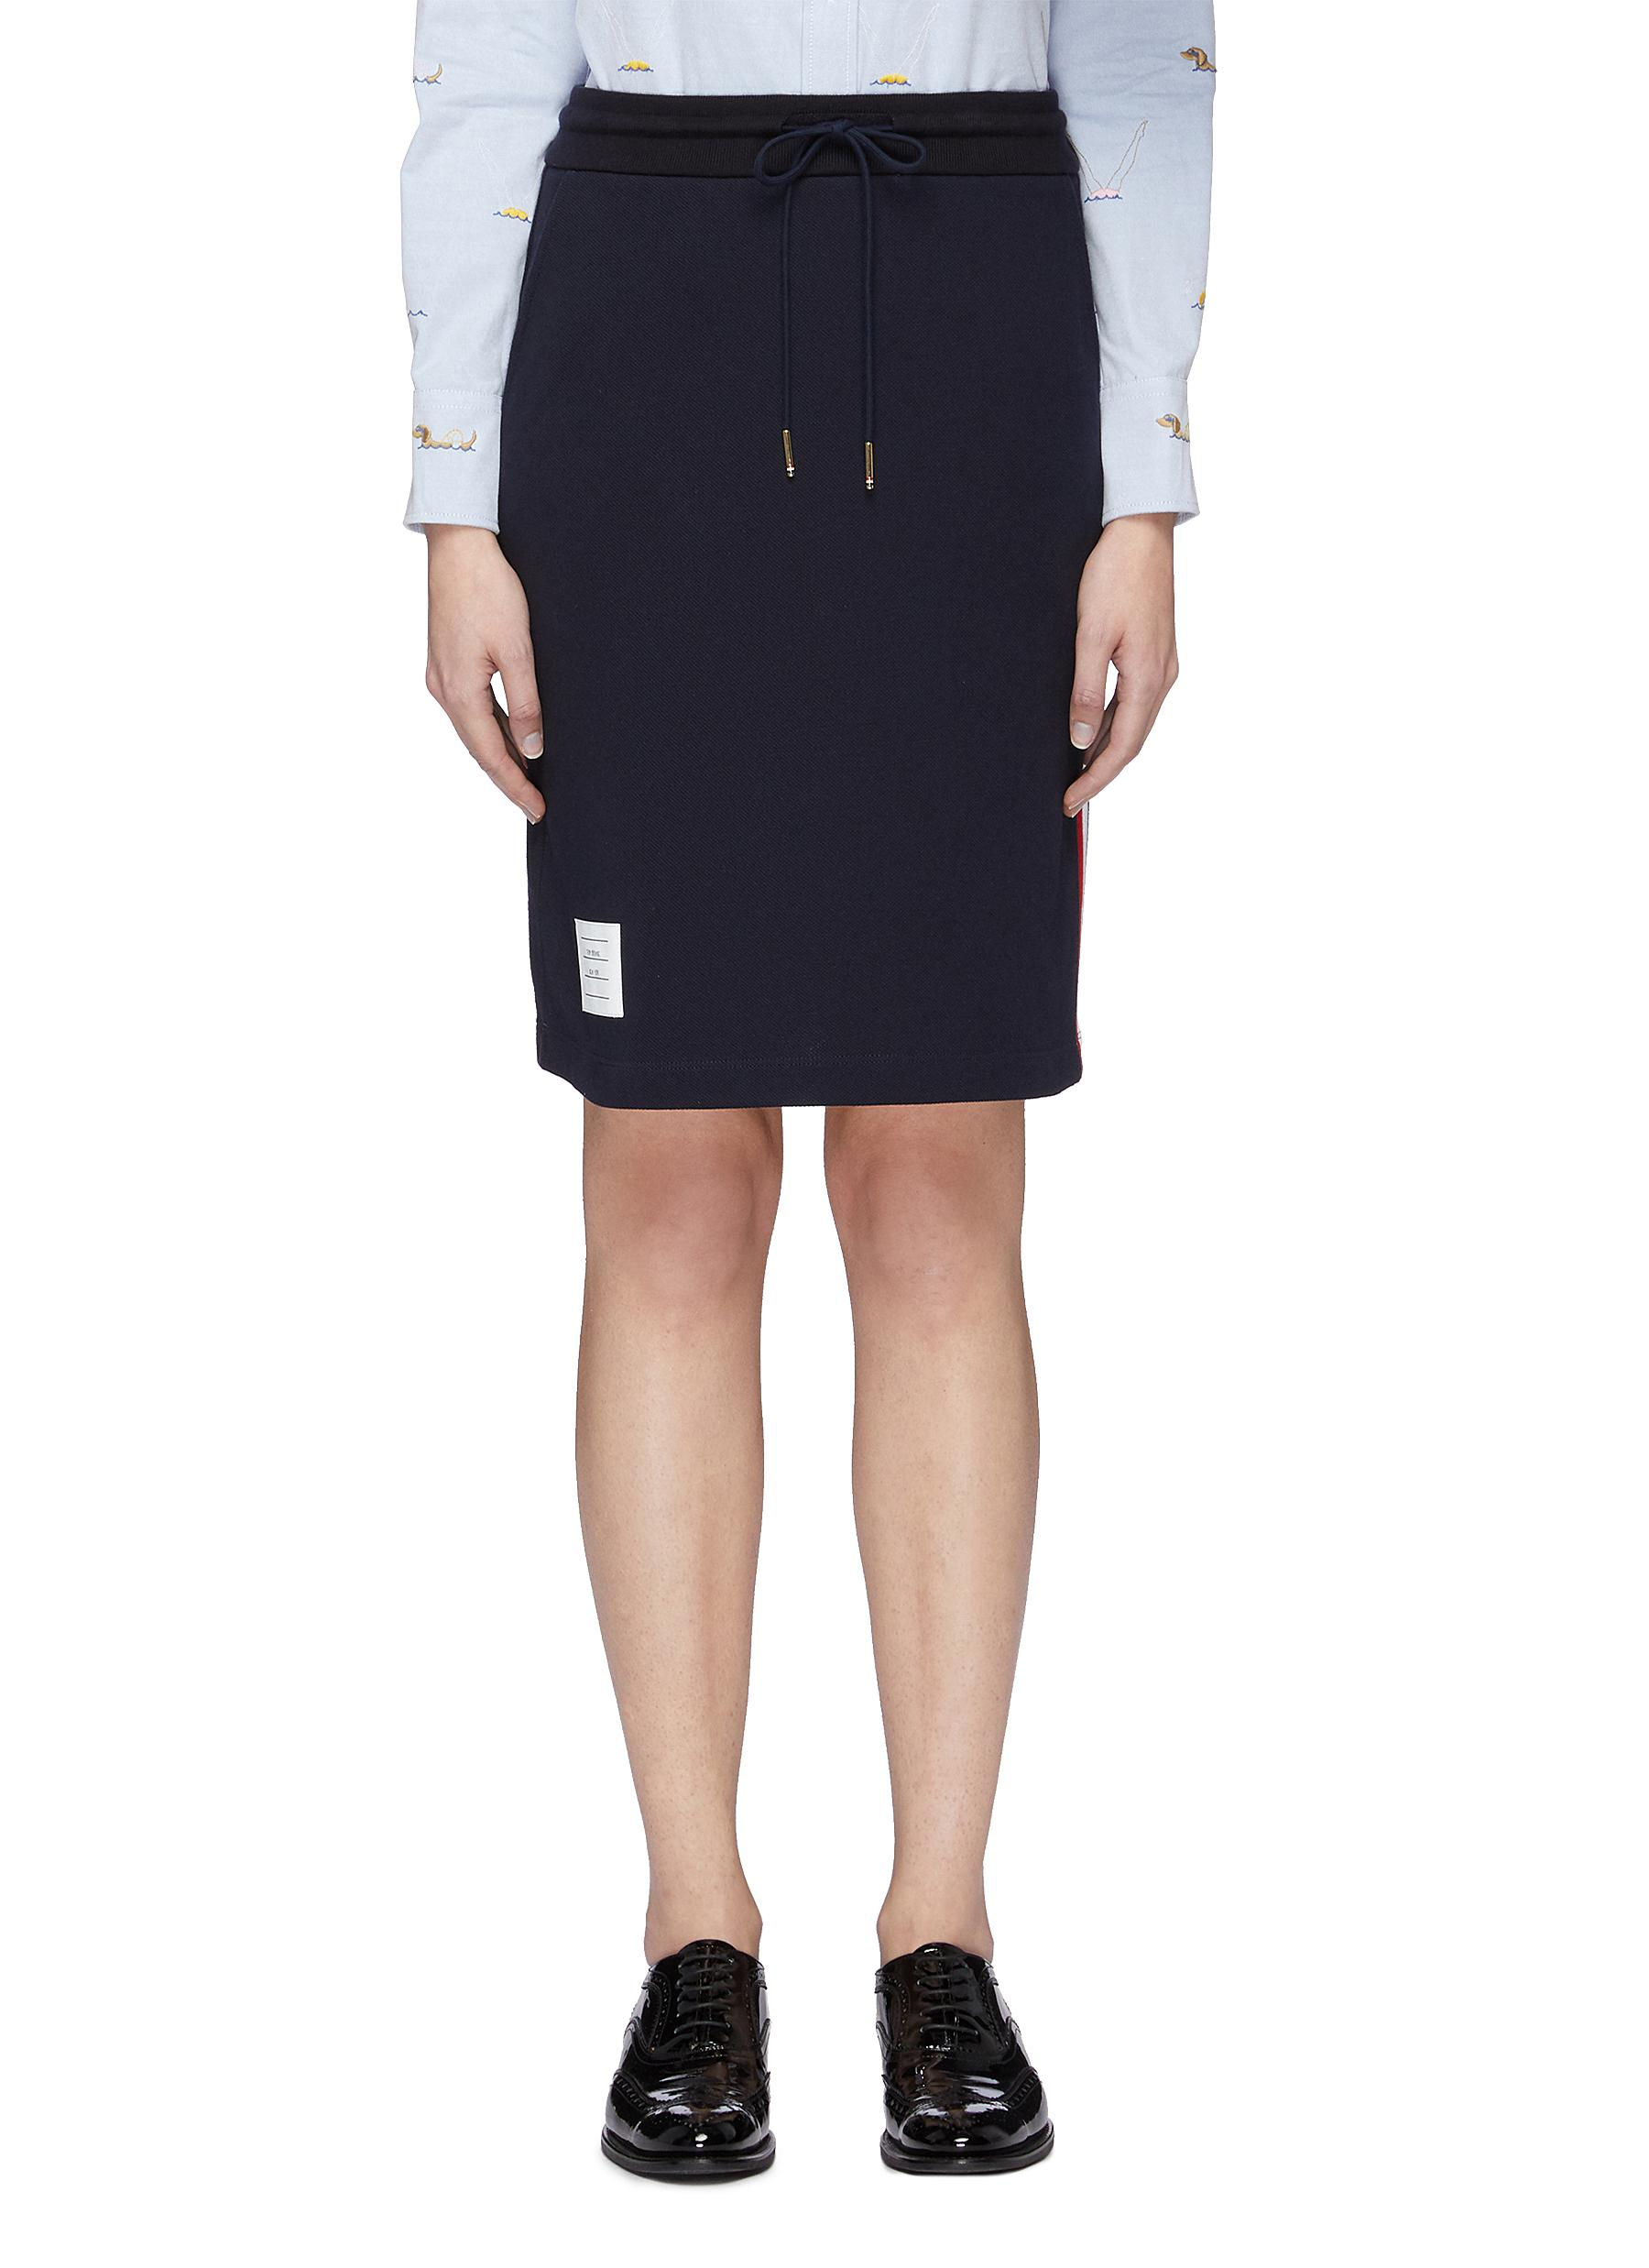 3775585b09a722 Main View - Click To Enlarge - Thom Browne - Stripe outseam drawstring  piqué skirt